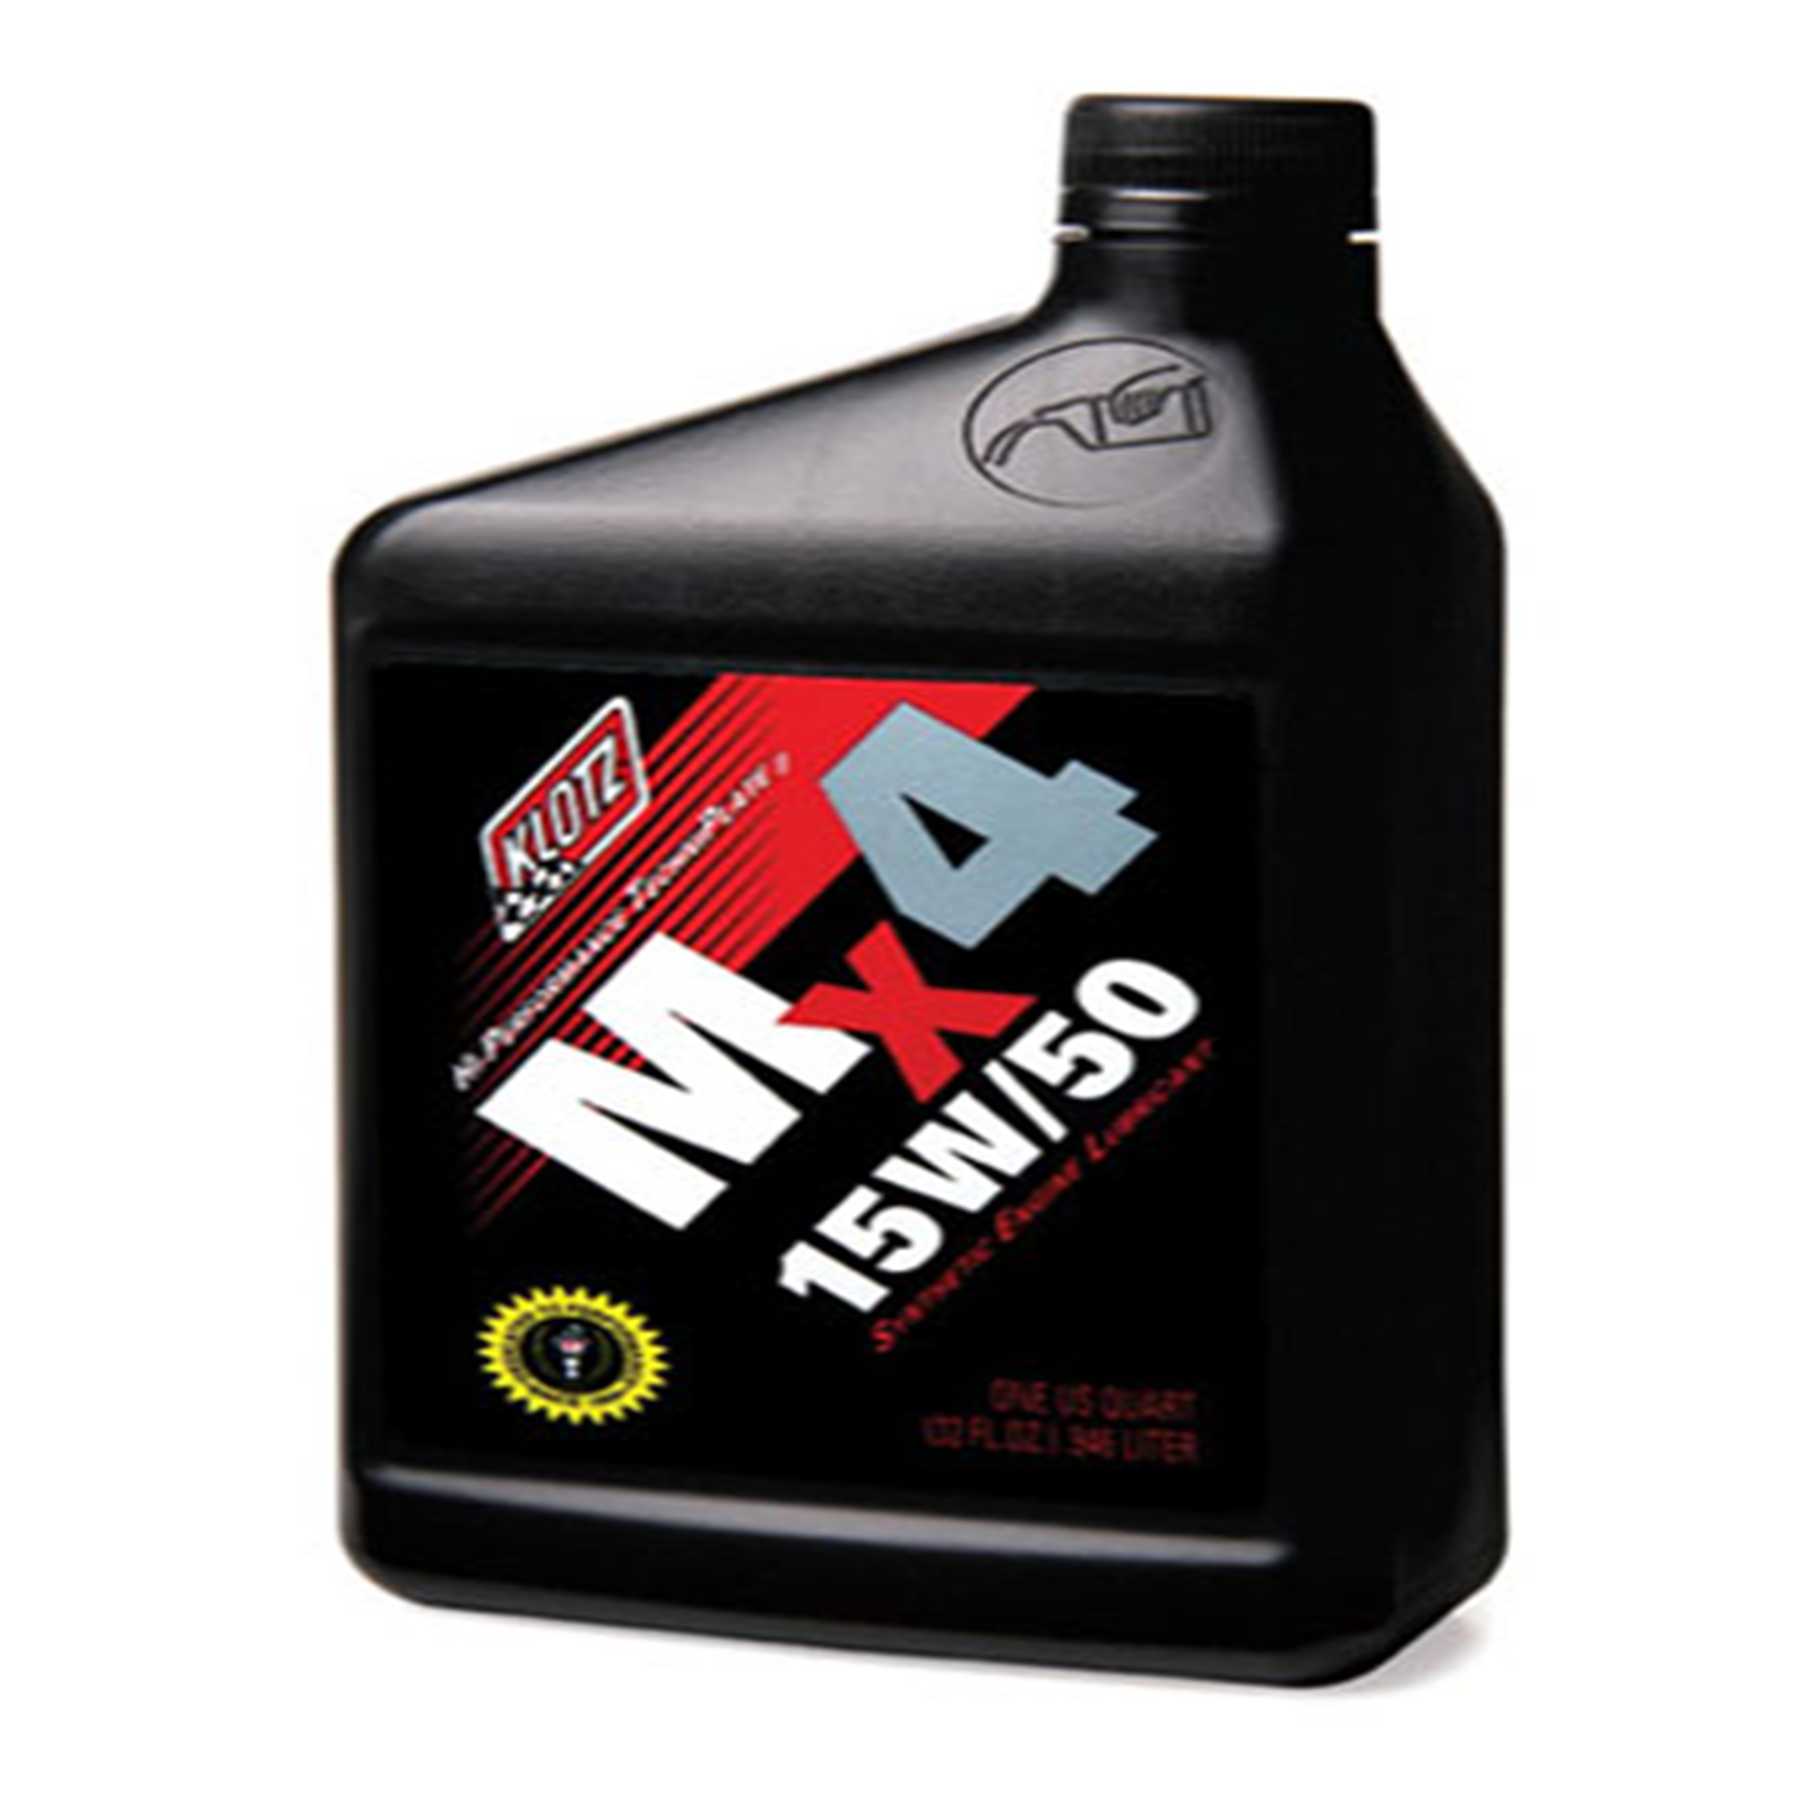 KLOTZ MX4 15W50 OIL (QT)